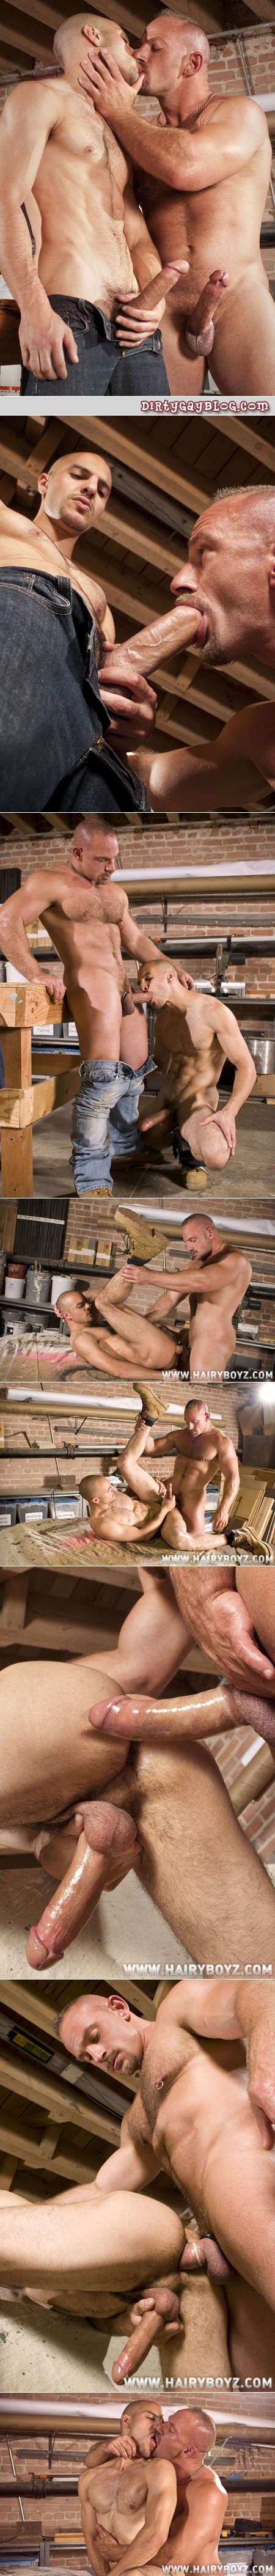 Muscular furry top with a mustache and big dick fucks a hung uncut Latino in work boots.